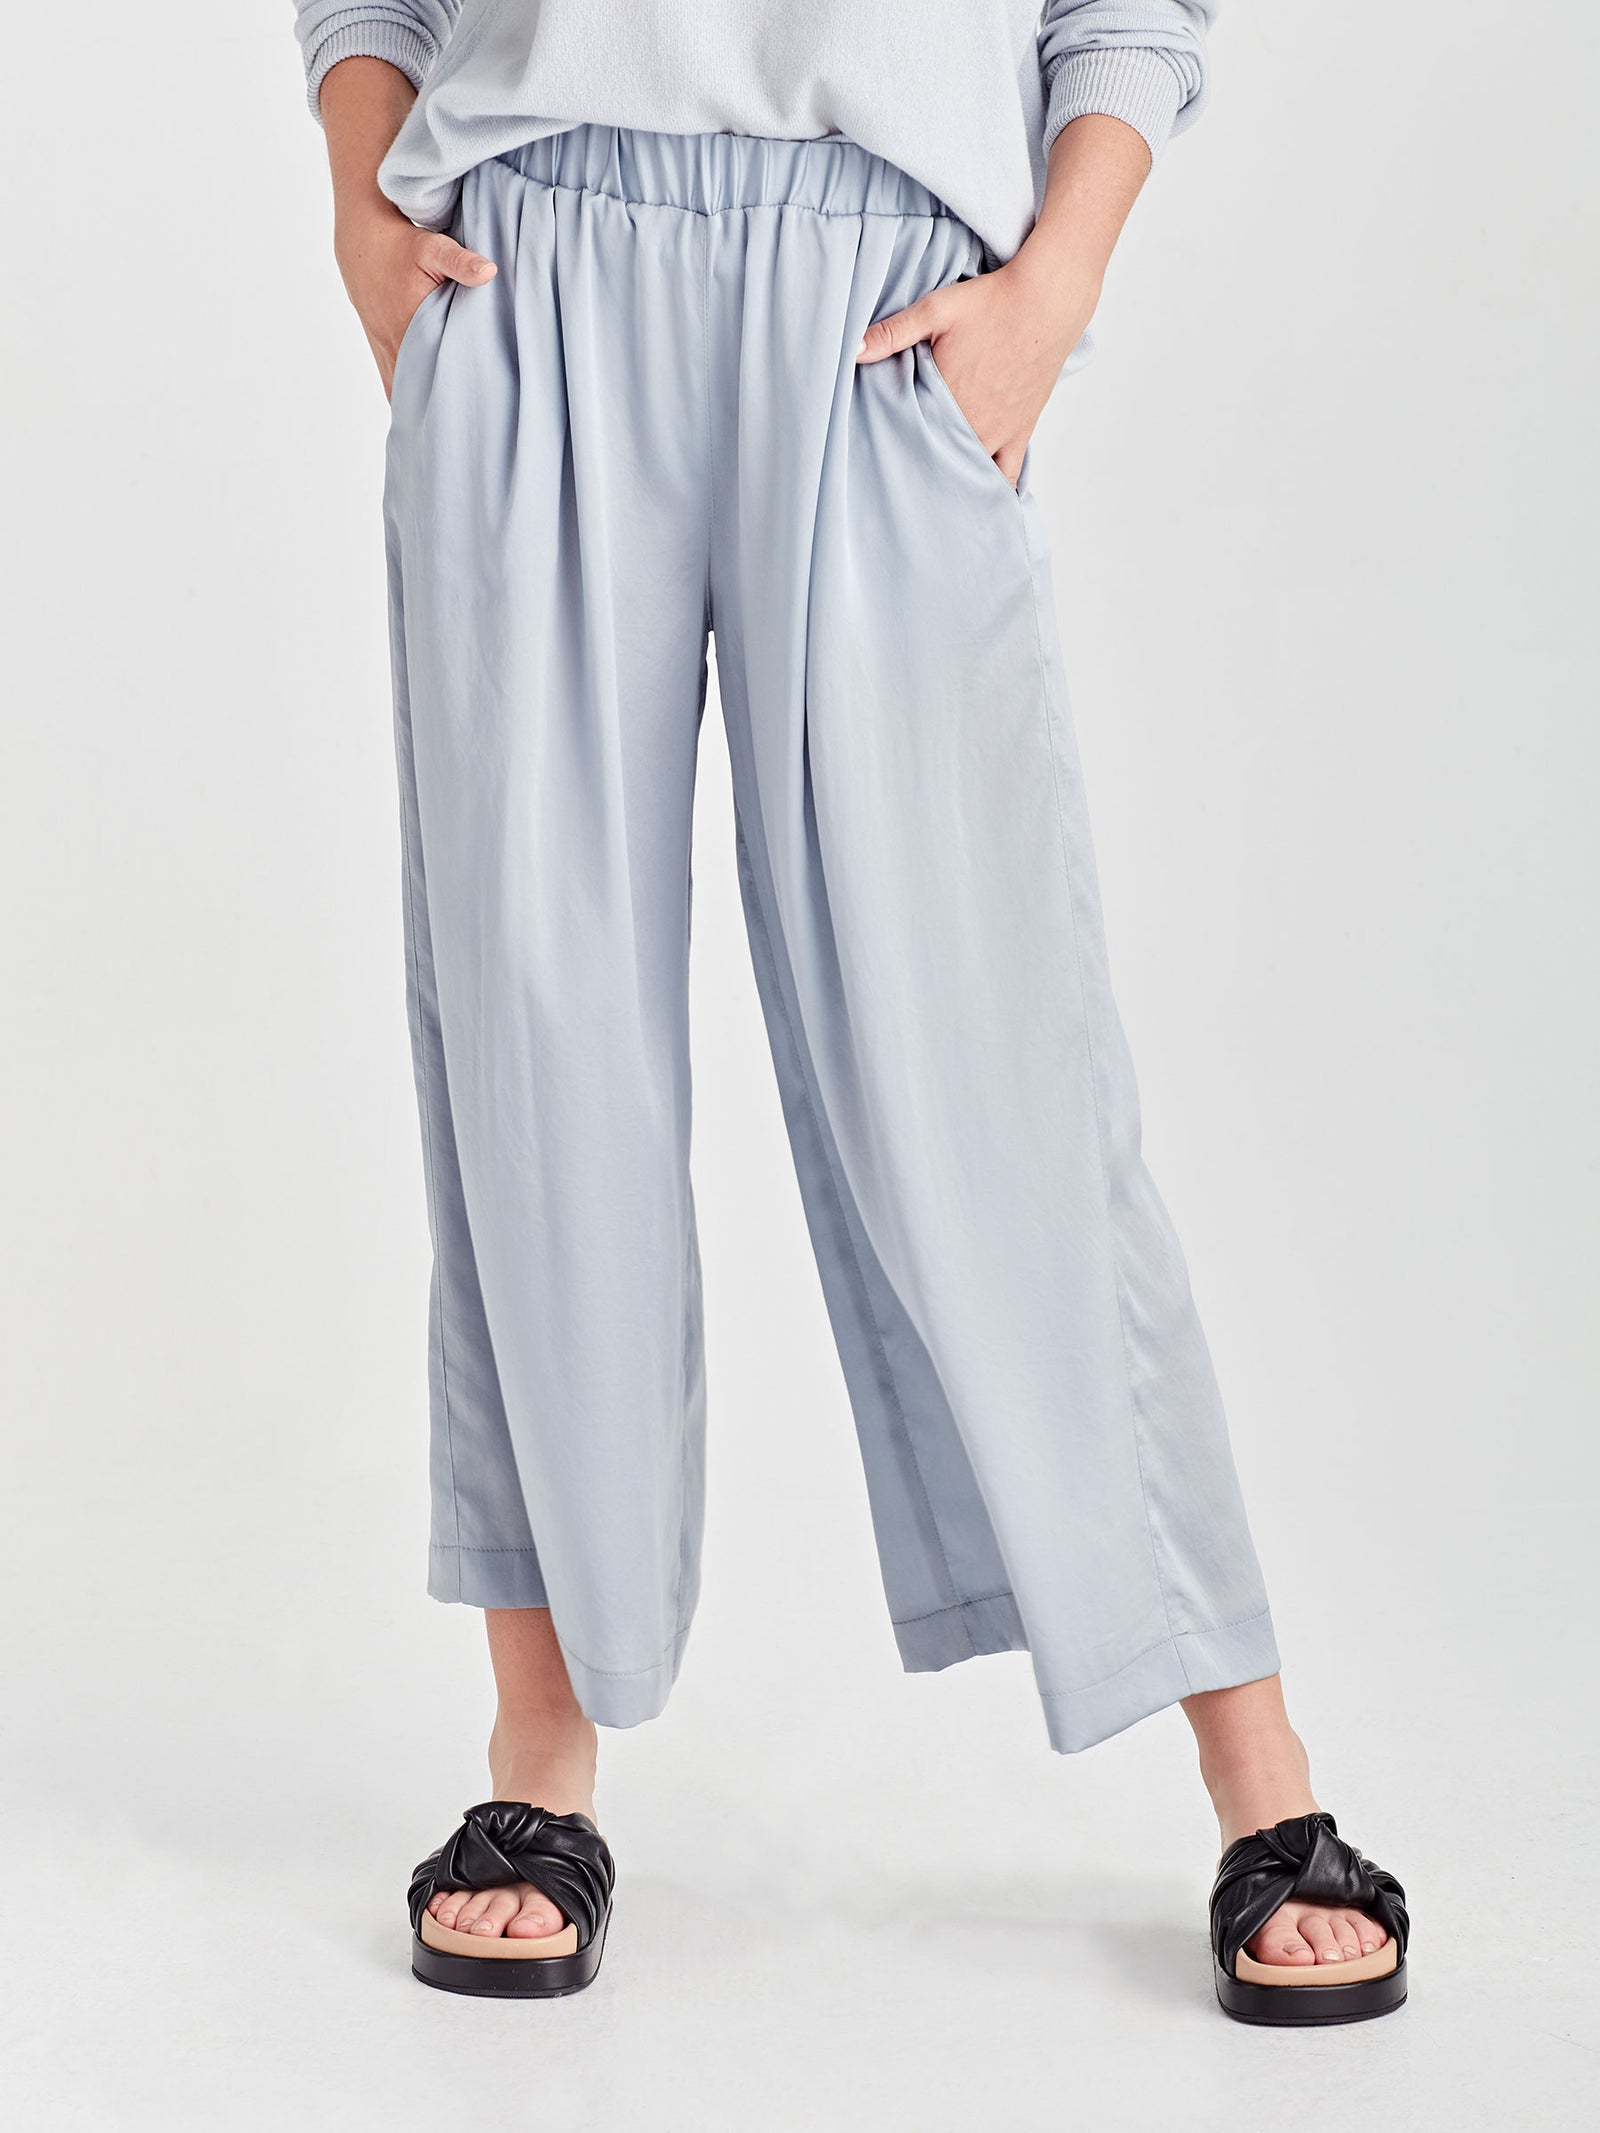 Wide Leg Ash Pant (Satin Triacetate) Powder